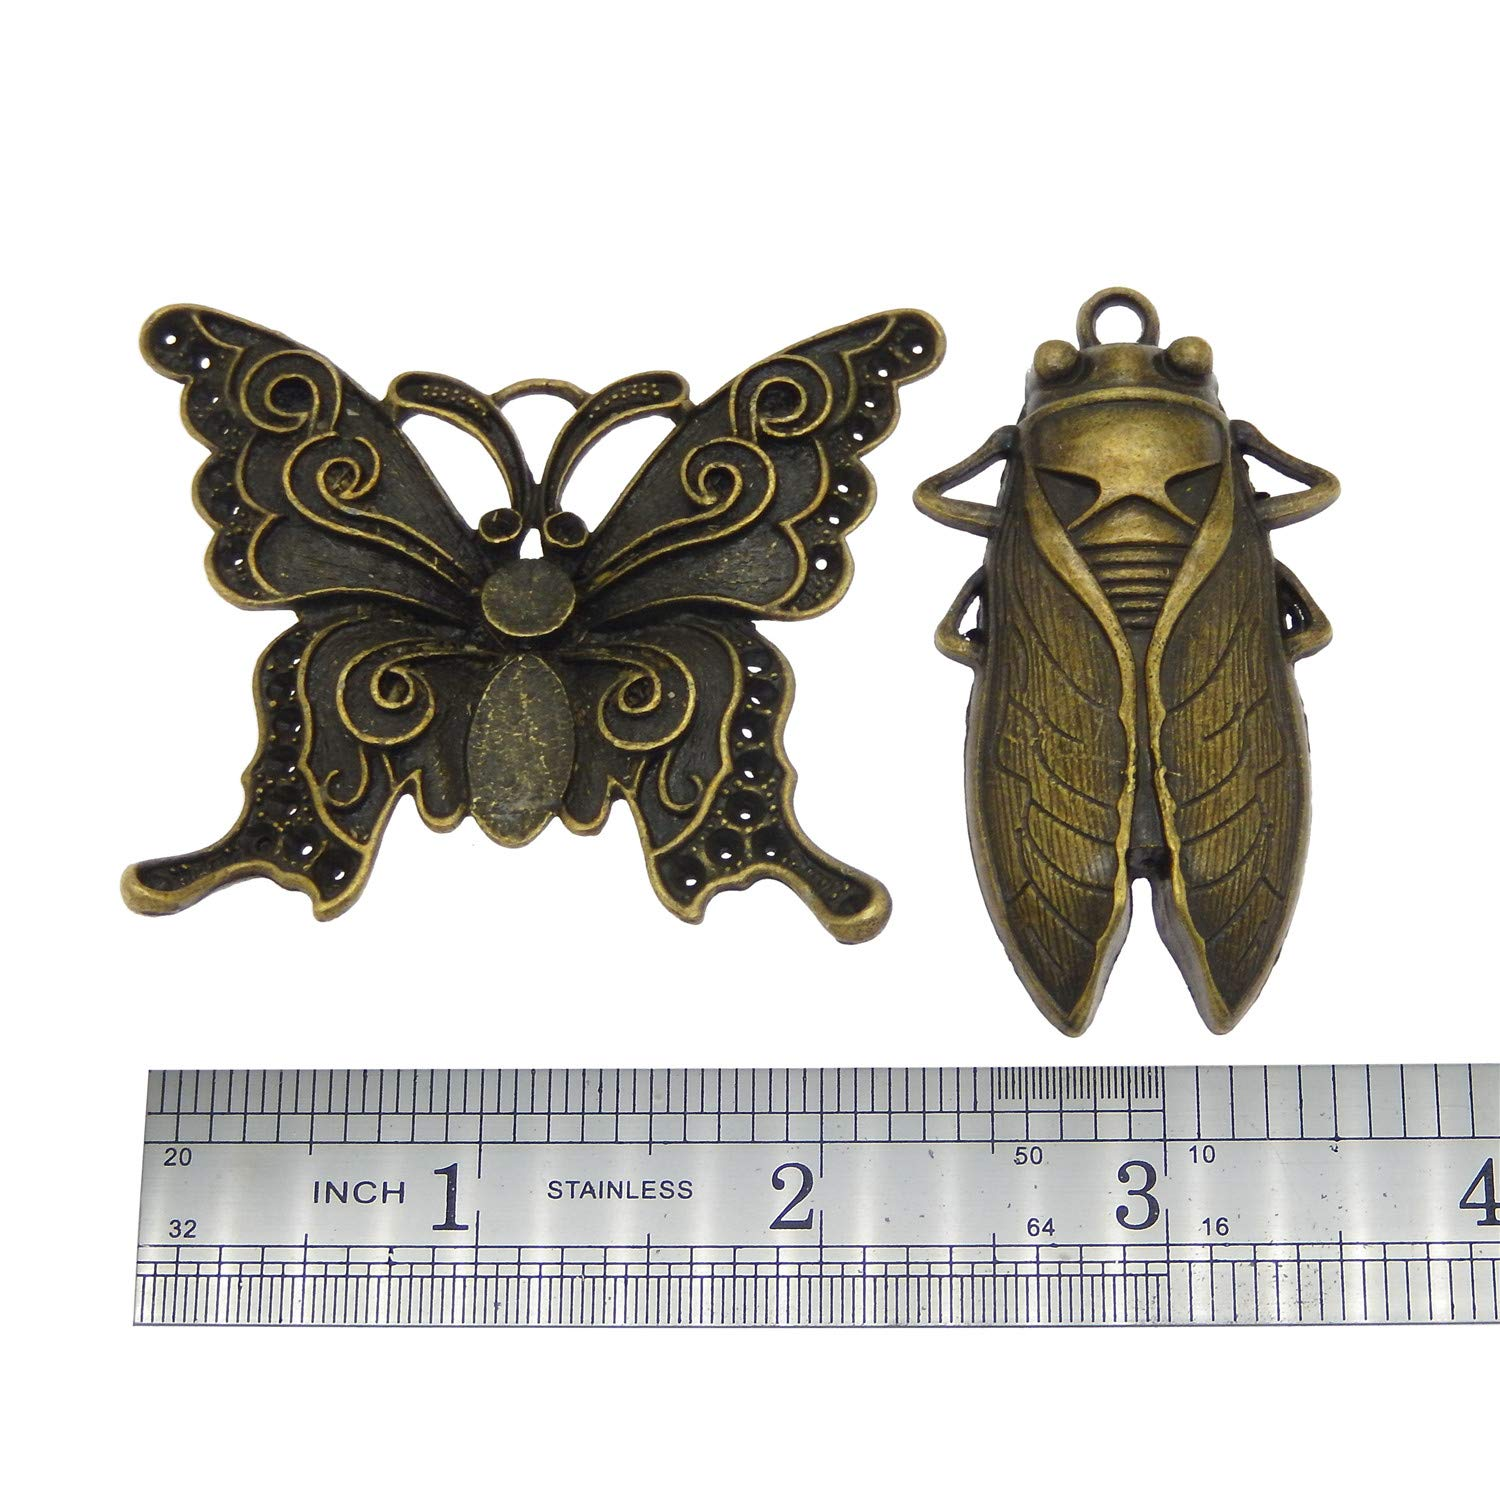 GraceAngie Wholesale 20 piece//pack Mixed Vintage Style Butterfly Animals Dragonfly Insects Charms Pendants for Necklace Bracelets Jewelry Making DIY Handmade Antique Silver